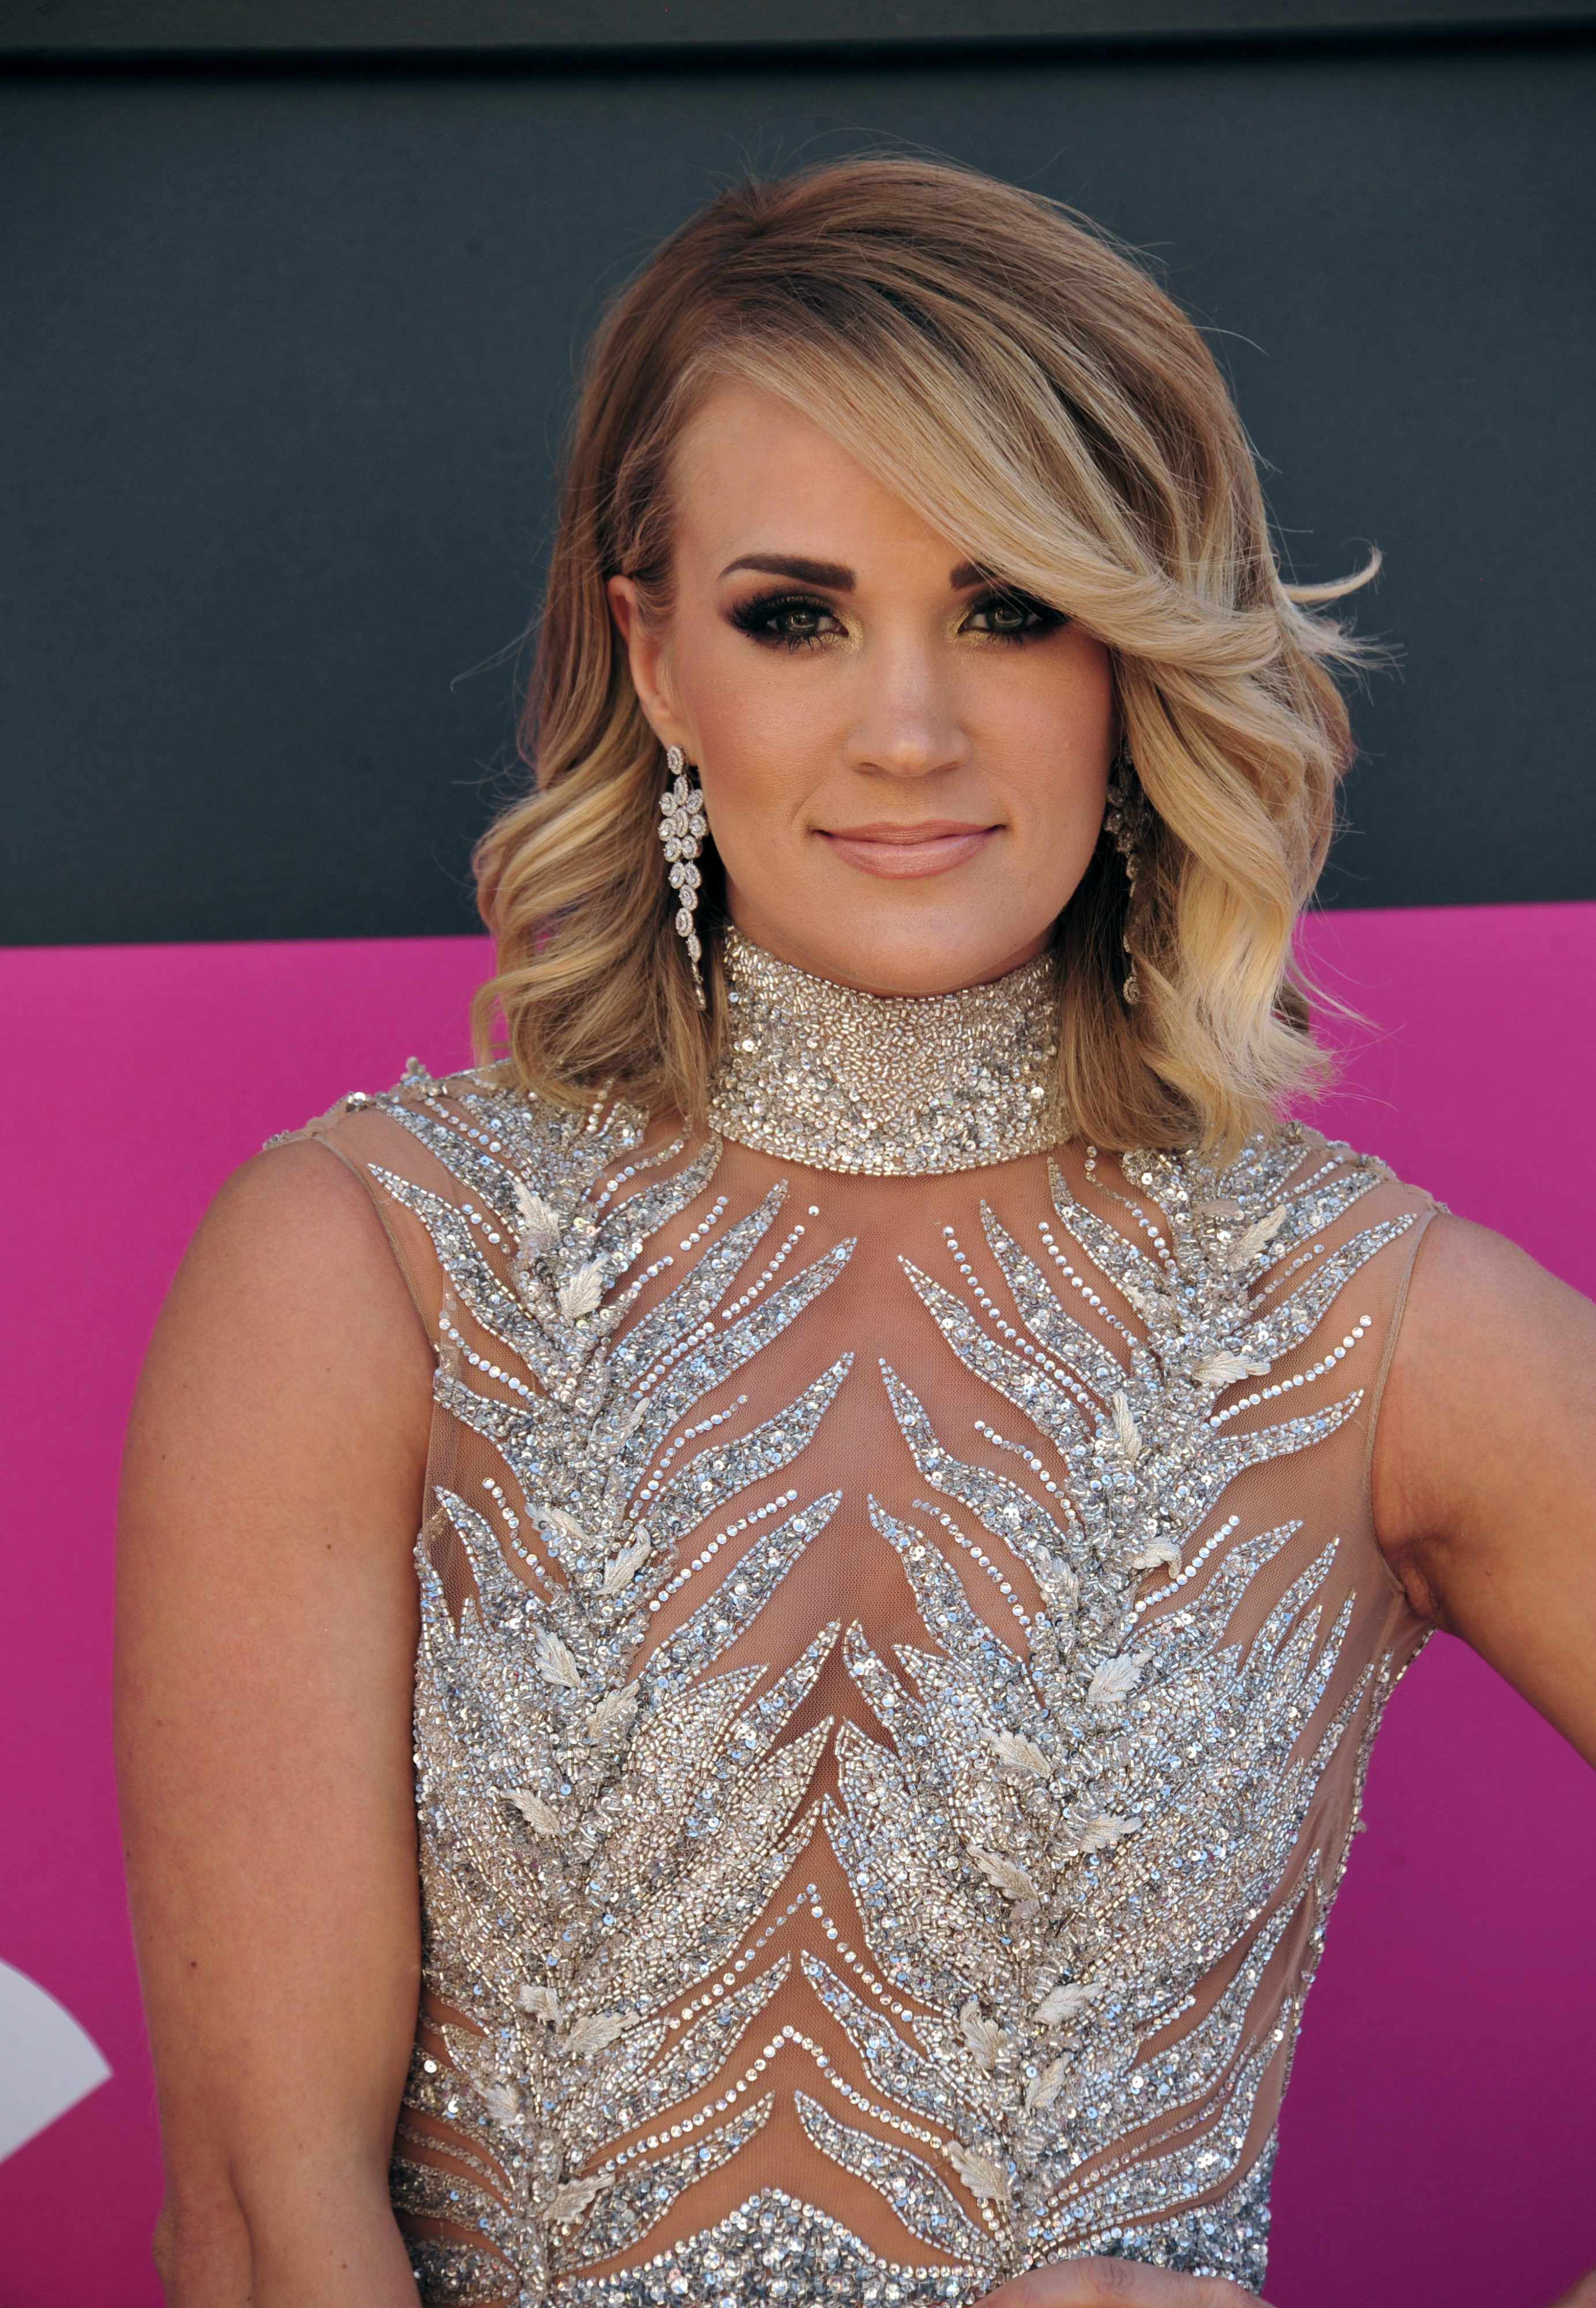 Carrie Underwood's Feathered Side Bangs